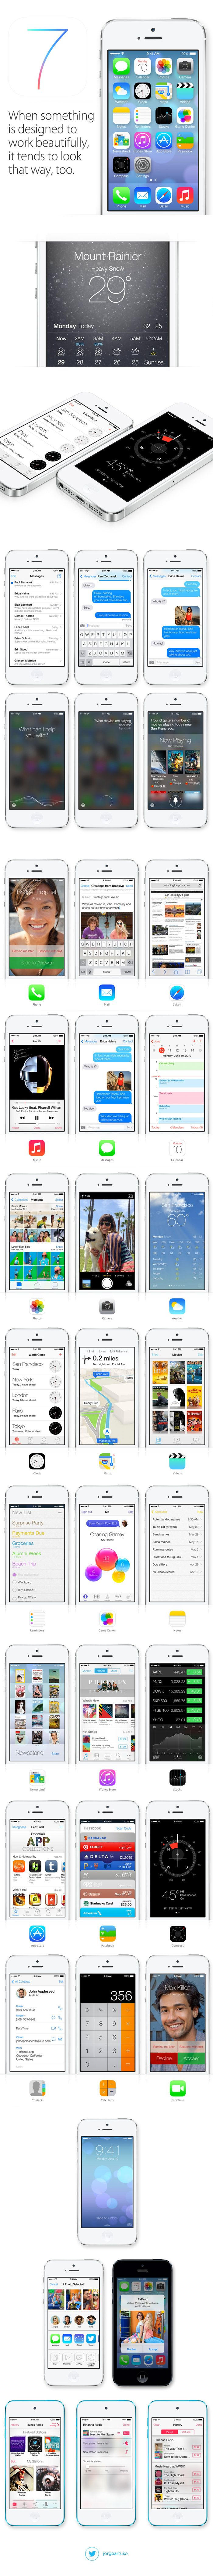 #Apple IOS7http://www.apple.com/ios/ios7/design/